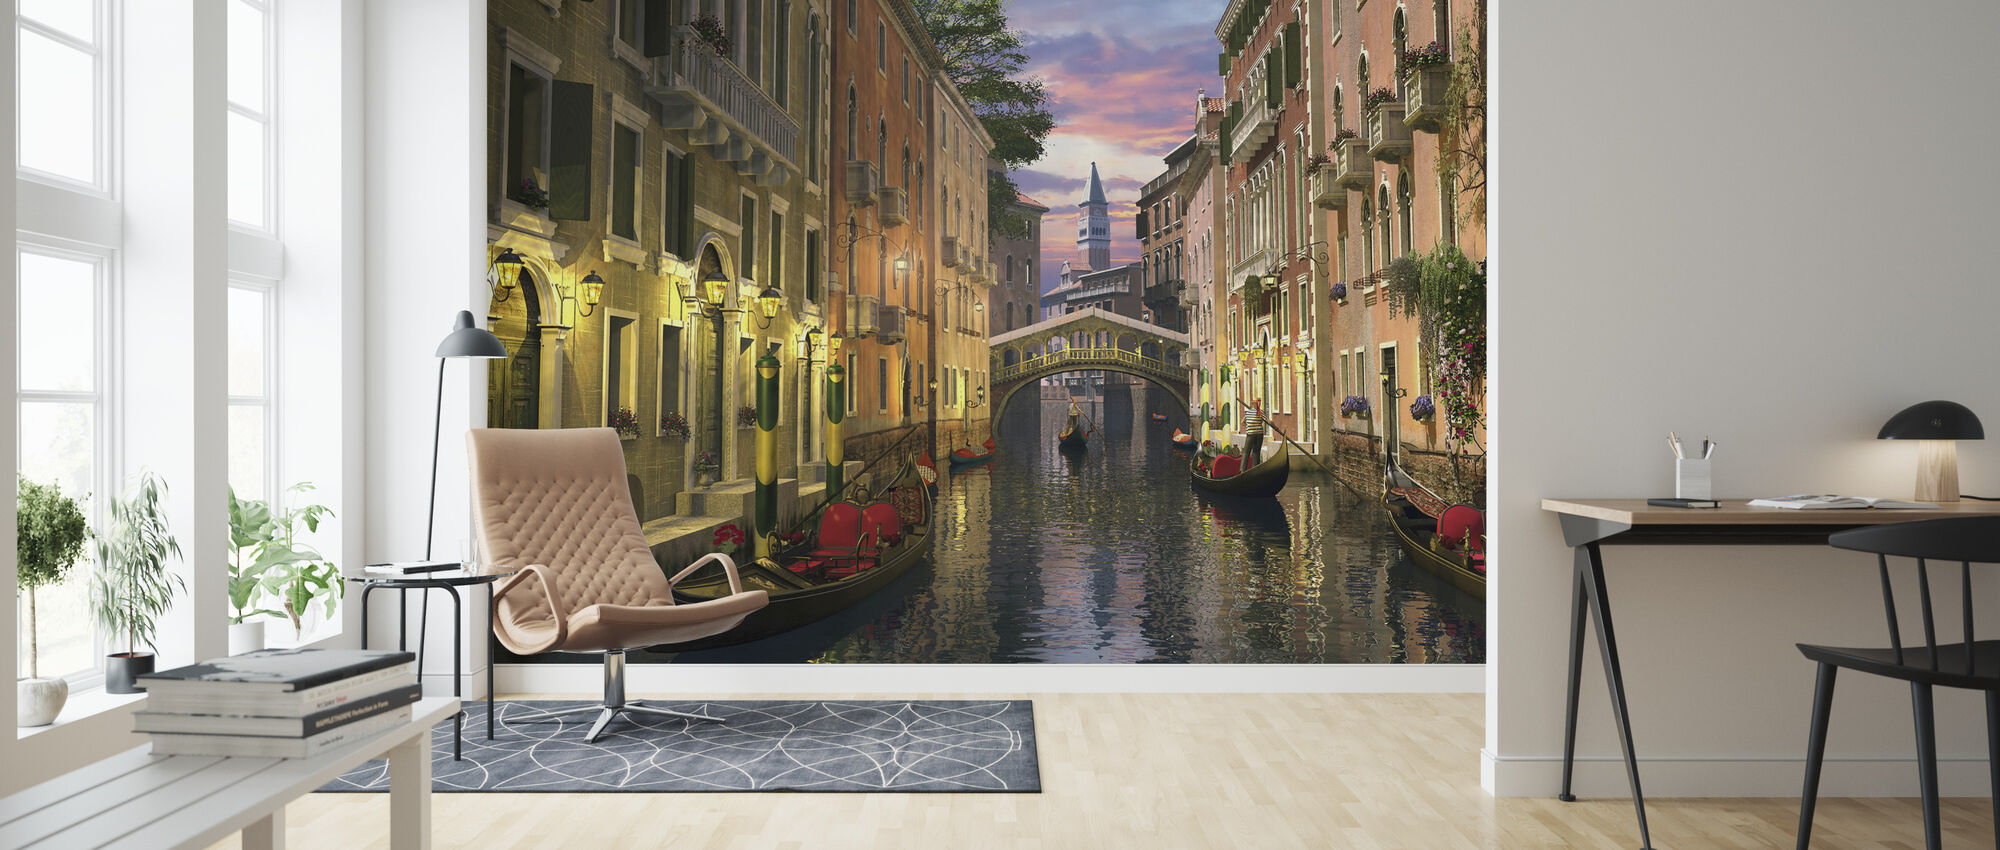 Venice at Dusk - Wallpaper - Living Room